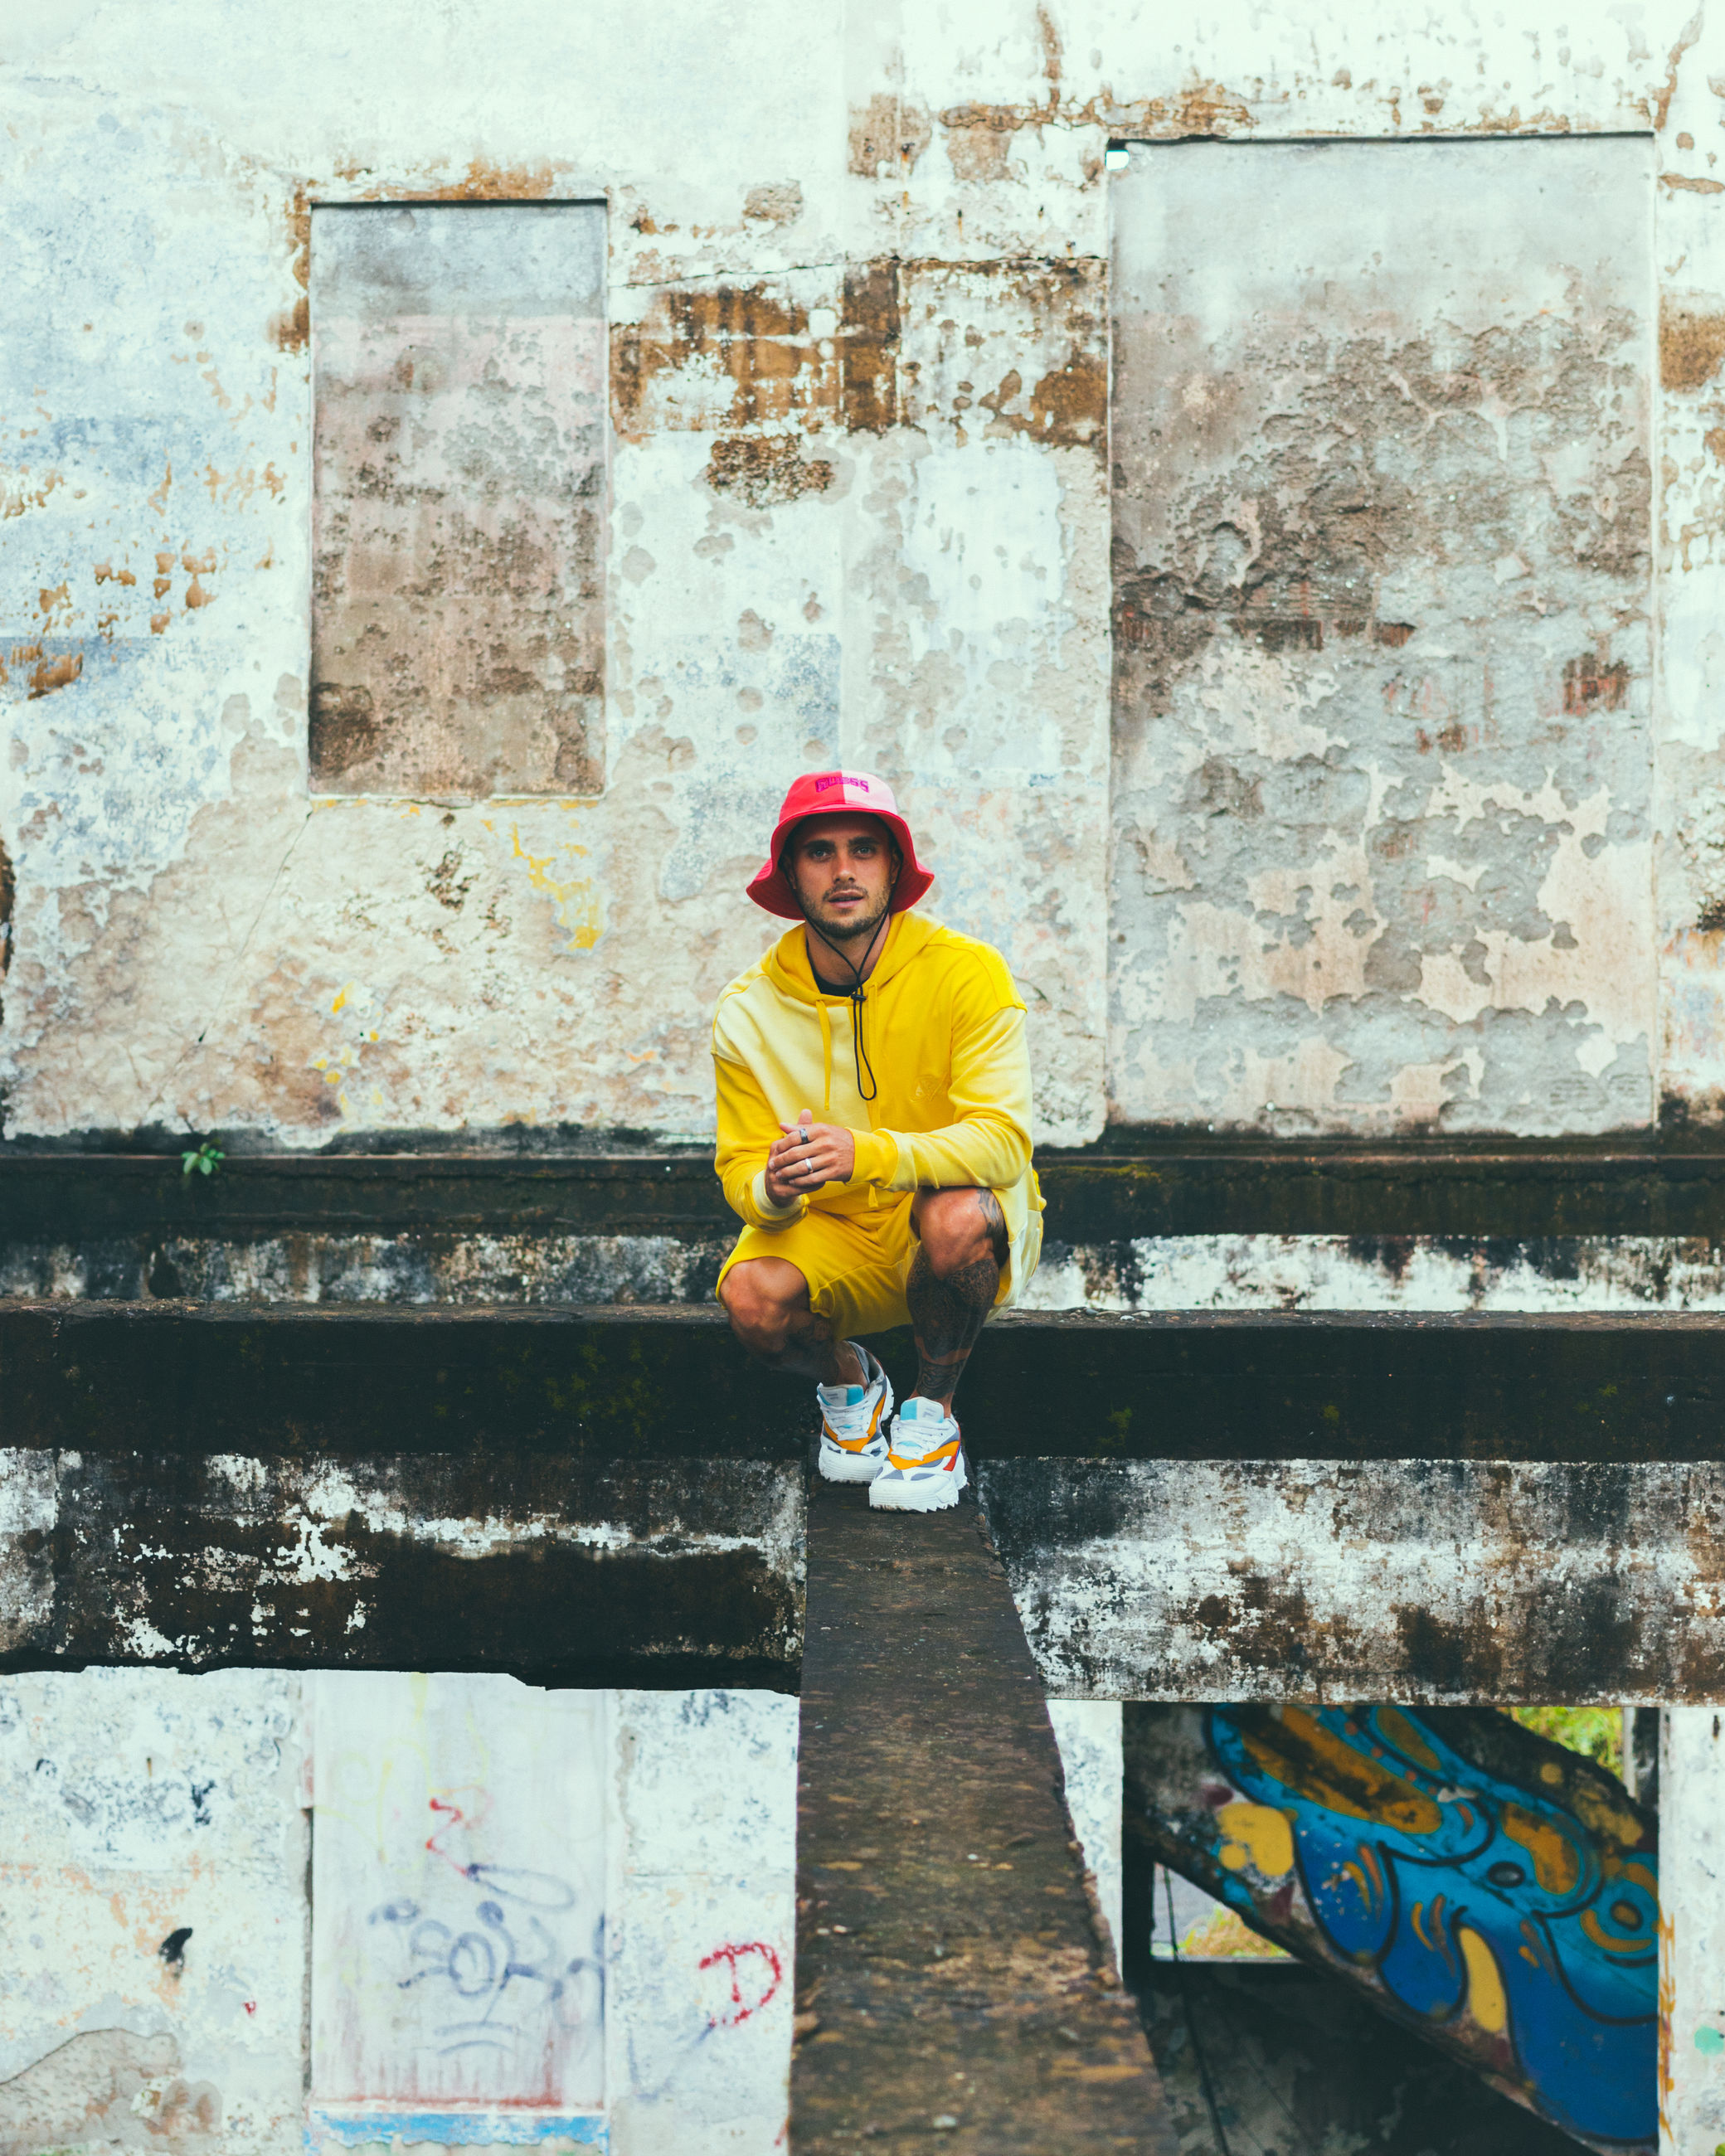 wall, one person, full length, art, architecture, yellow, adult, day, men, clothing, hat, helmet, built structure, front view, headwear, standing, occupation, wall - building feature, lifestyles, outdoors, young adult, hard hat, leisure activity, portrait, looking at camera, protection, person, casual clothing, building exterior, women, blue